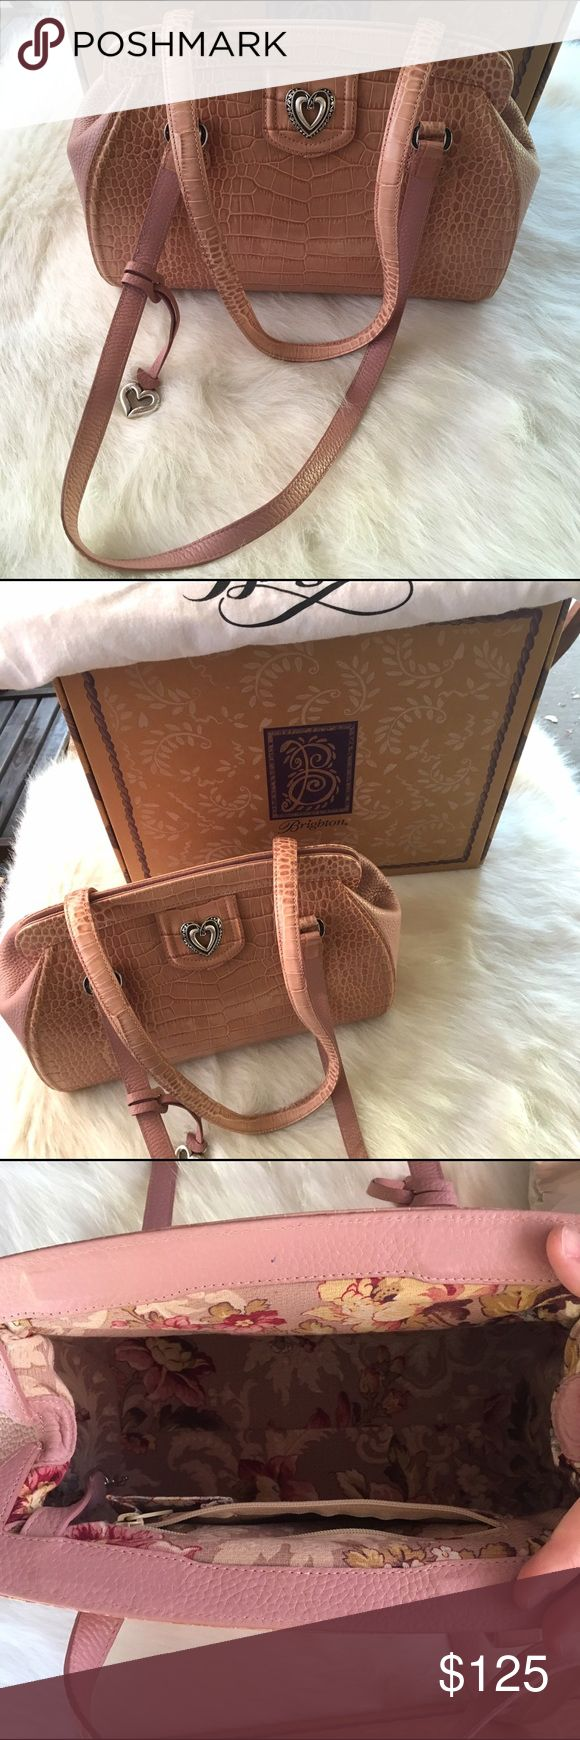 Elle Rose Brighton Handbag Beautiful Brighton hand bag. Comes with original box & dust bag. Pretty pink leather. 2 small pen marks, otherwise perfect!! 💕💕 Brighton Bags Satchels